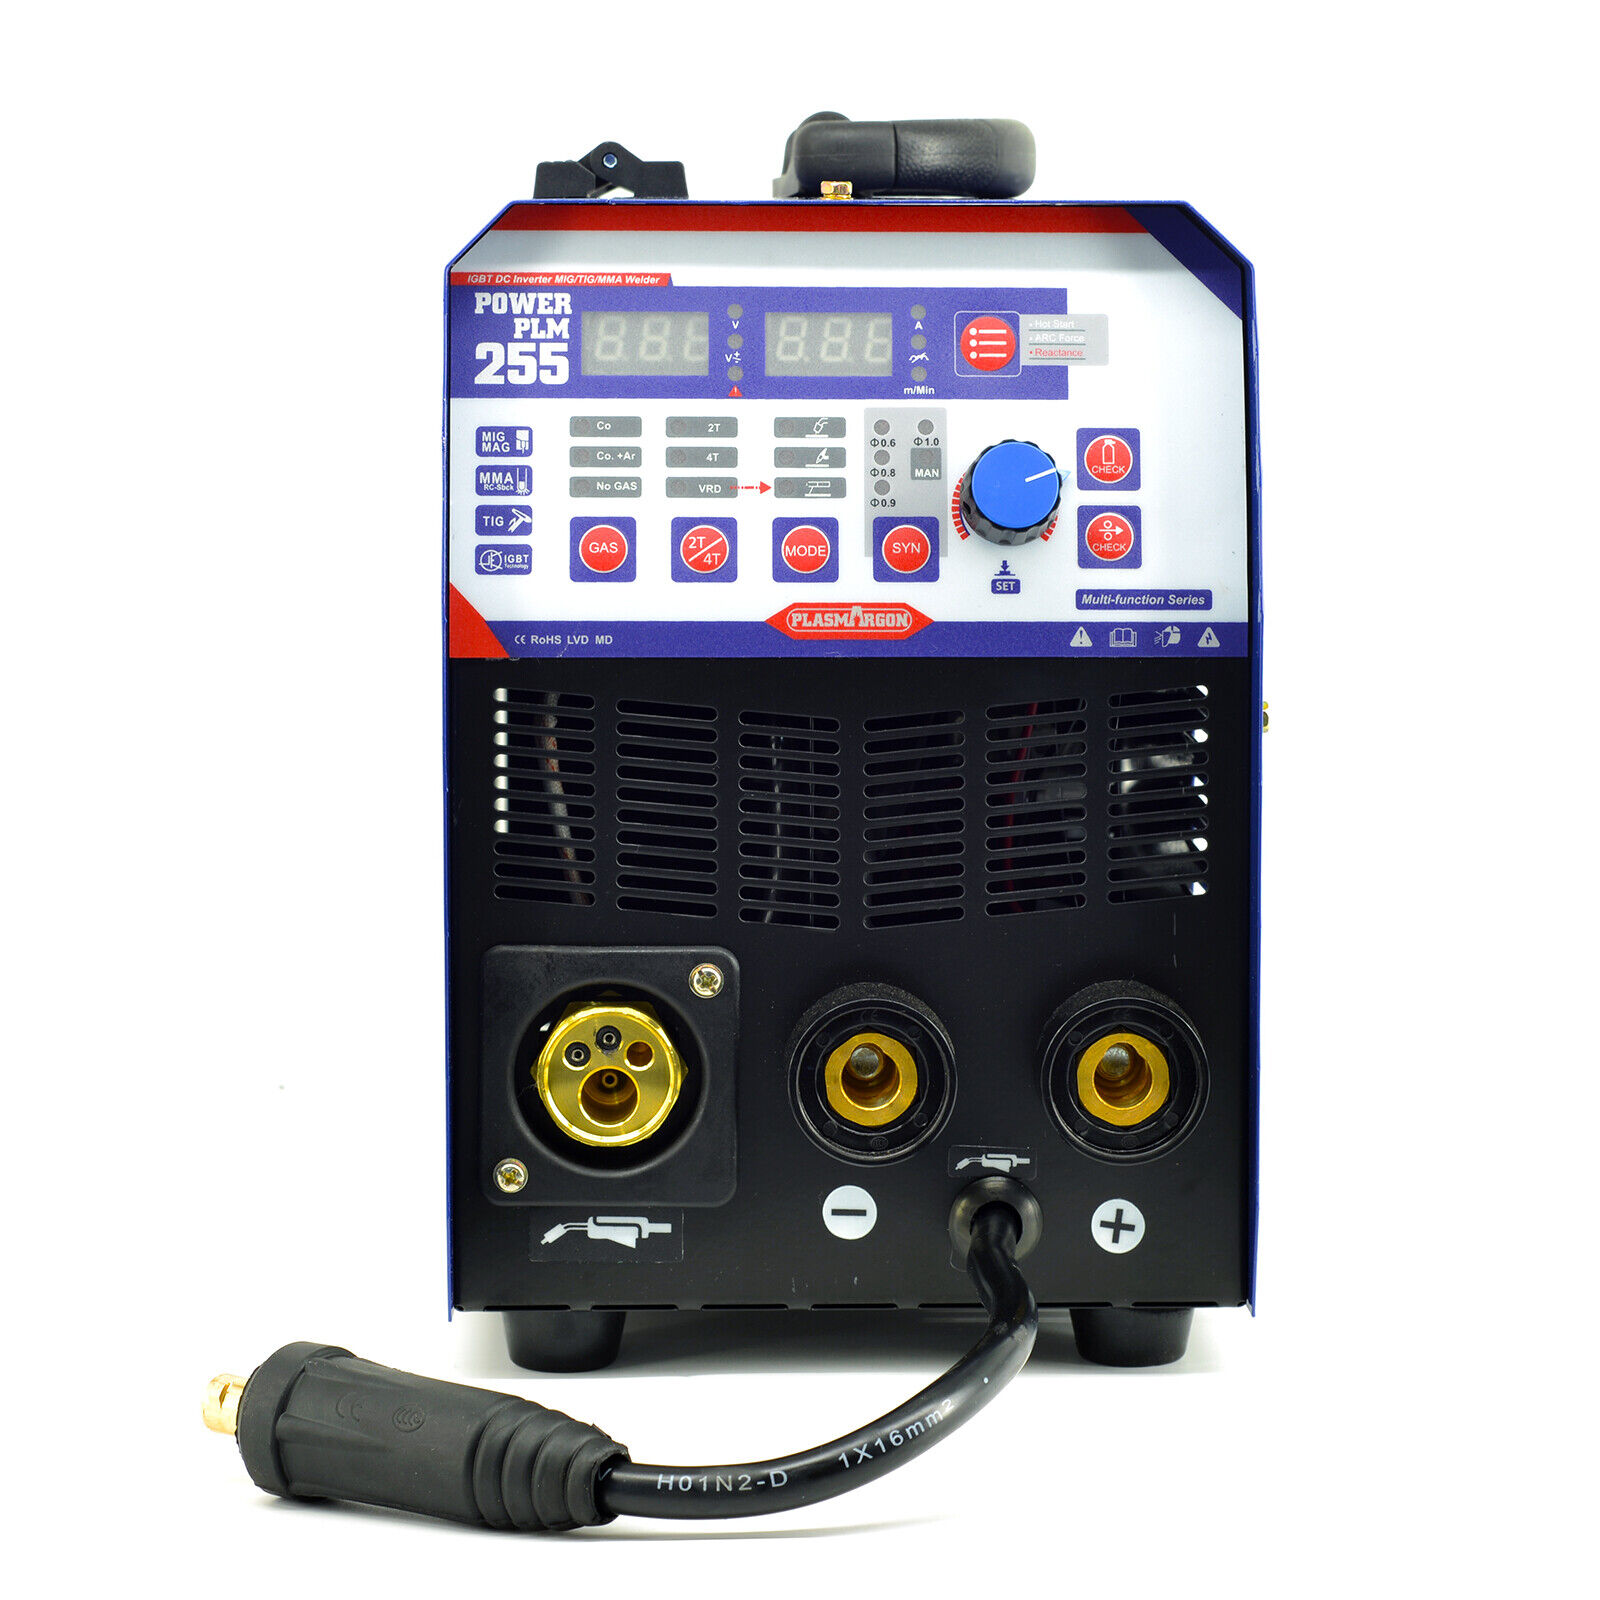 3IN1 MIG Welder 200A Gas/Gasless 110/220V ARC Stick MMA Lift-TIG Inverter Welder. Buy it now for 334.90